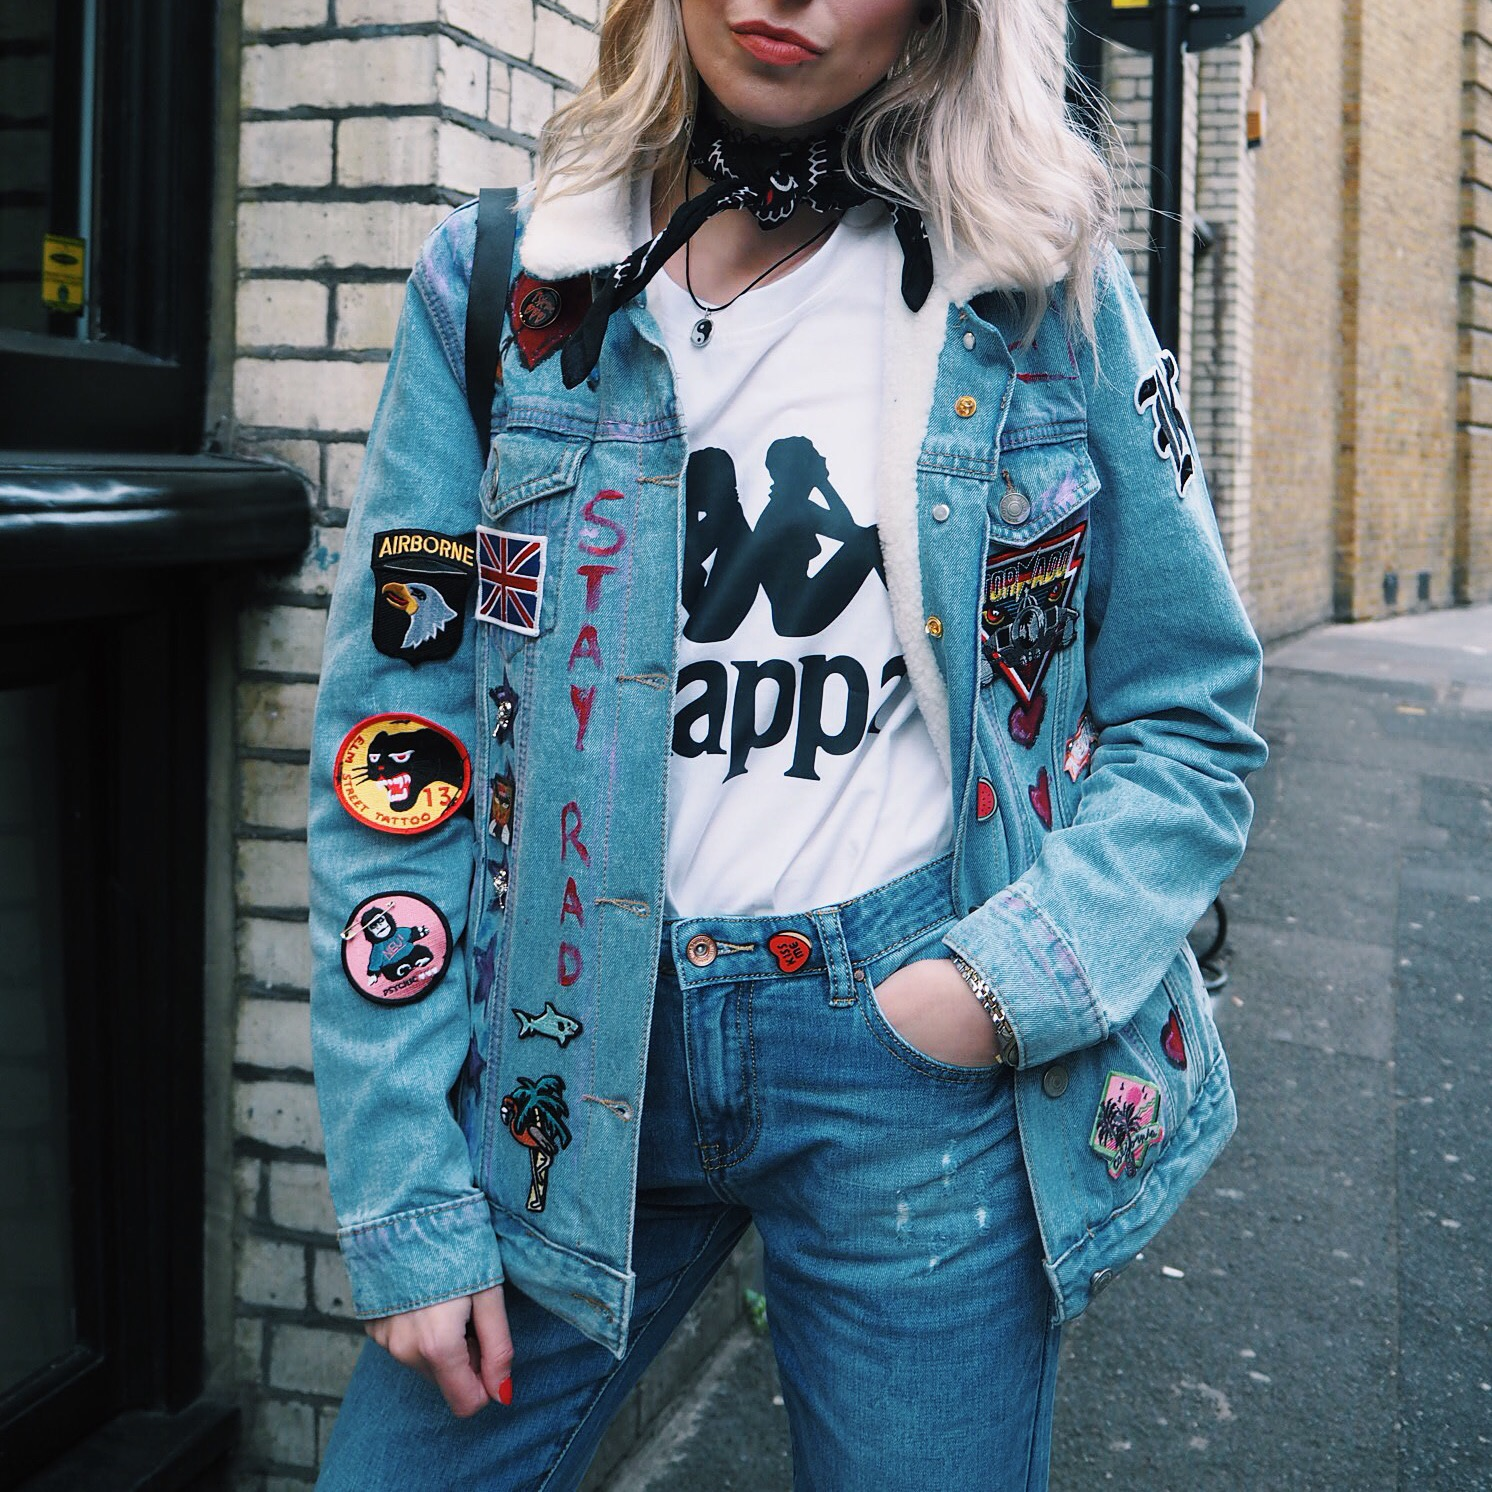 b73e3e15af5 This week I had the pleasure of attending a press event with UK based  womenswear brand Glamorous. The event was focussed on denim customisation  which we all ...